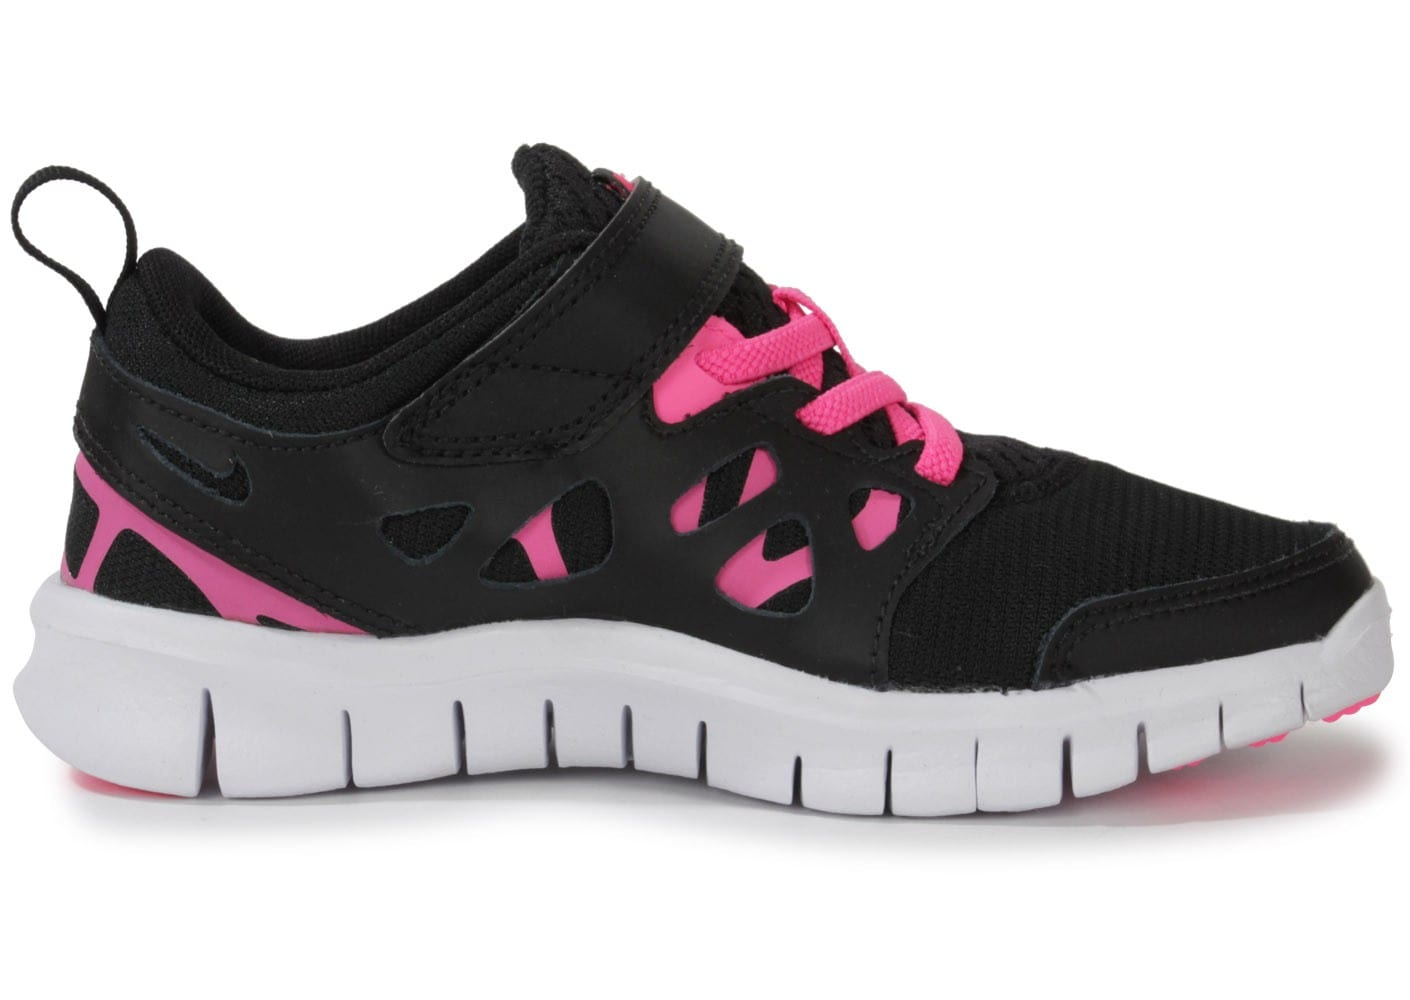 nike free run 2 noir et rose chaussures chaussures chausport. Black Bedroom Furniture Sets. Home Design Ideas